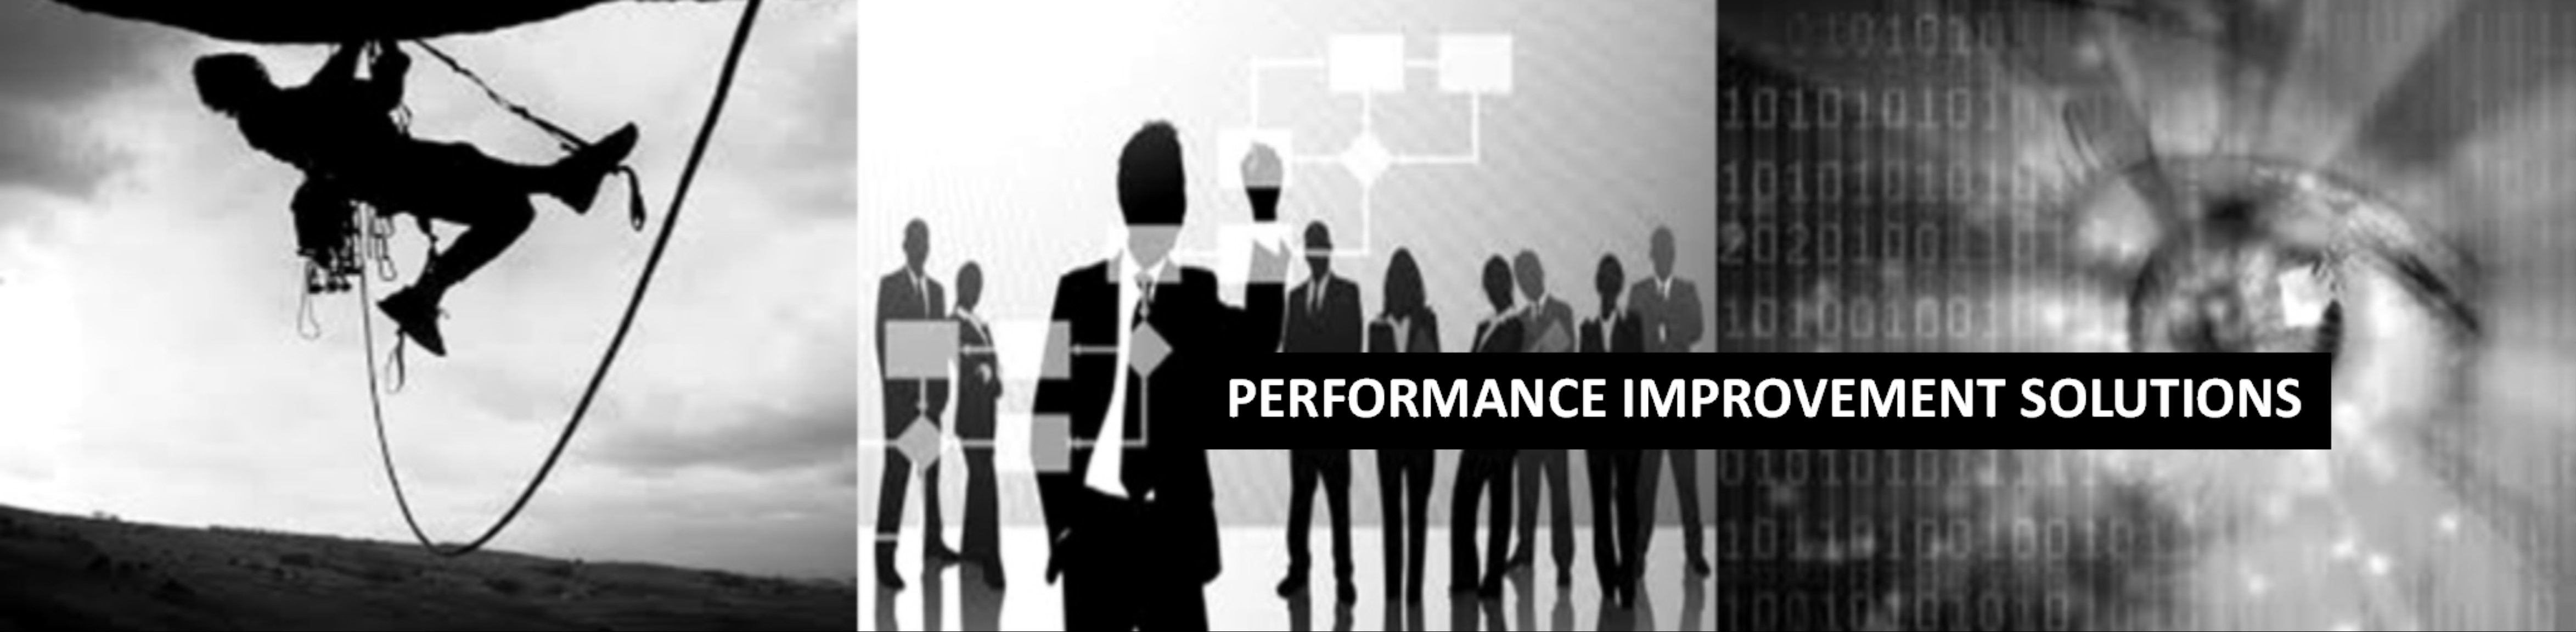 Organization Performance Improvement Consulting Tpmc Thouction